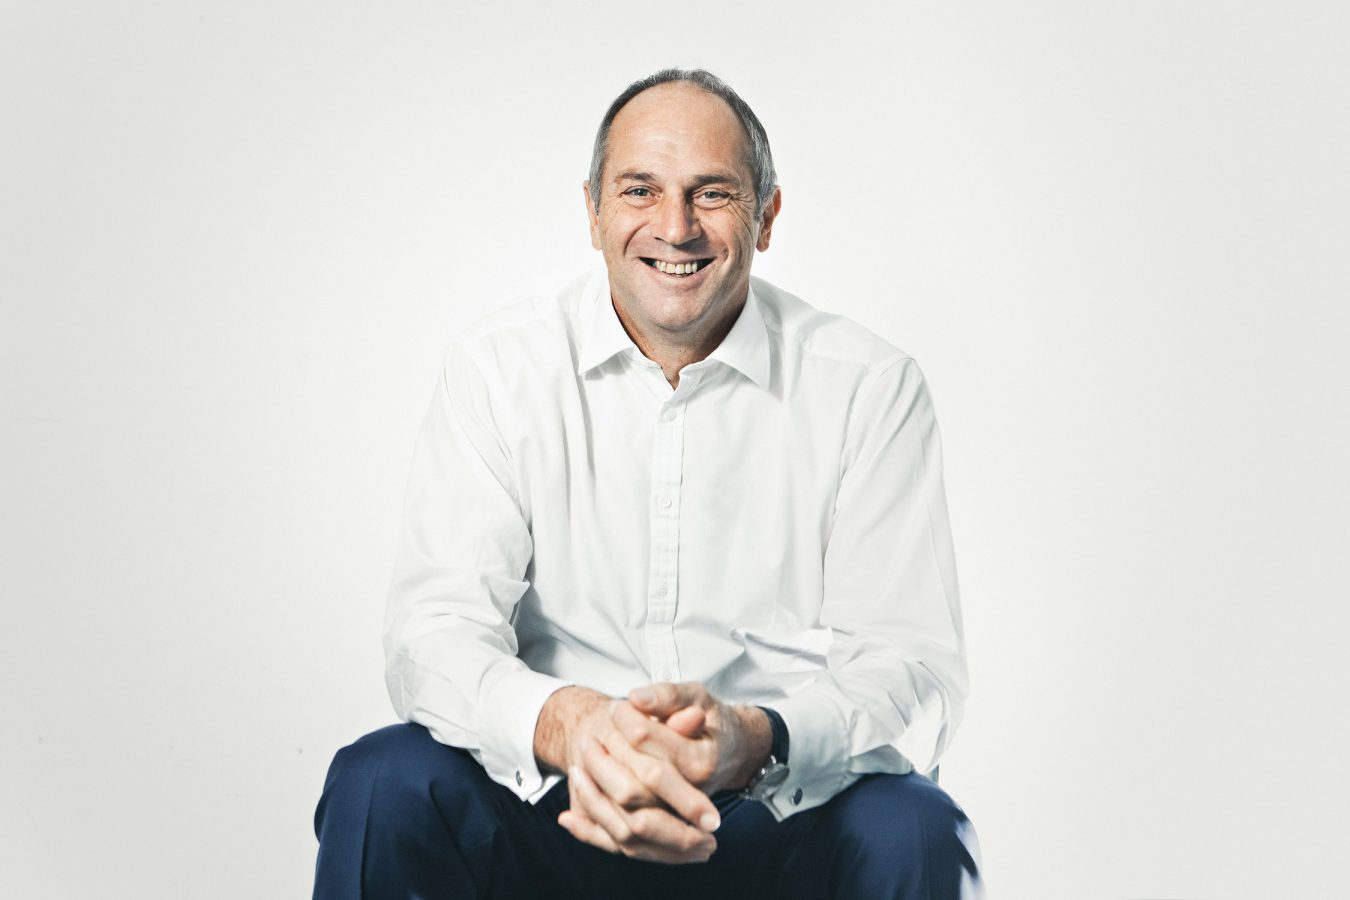 sir-steve-redgrave-smiling-studio-photography-london